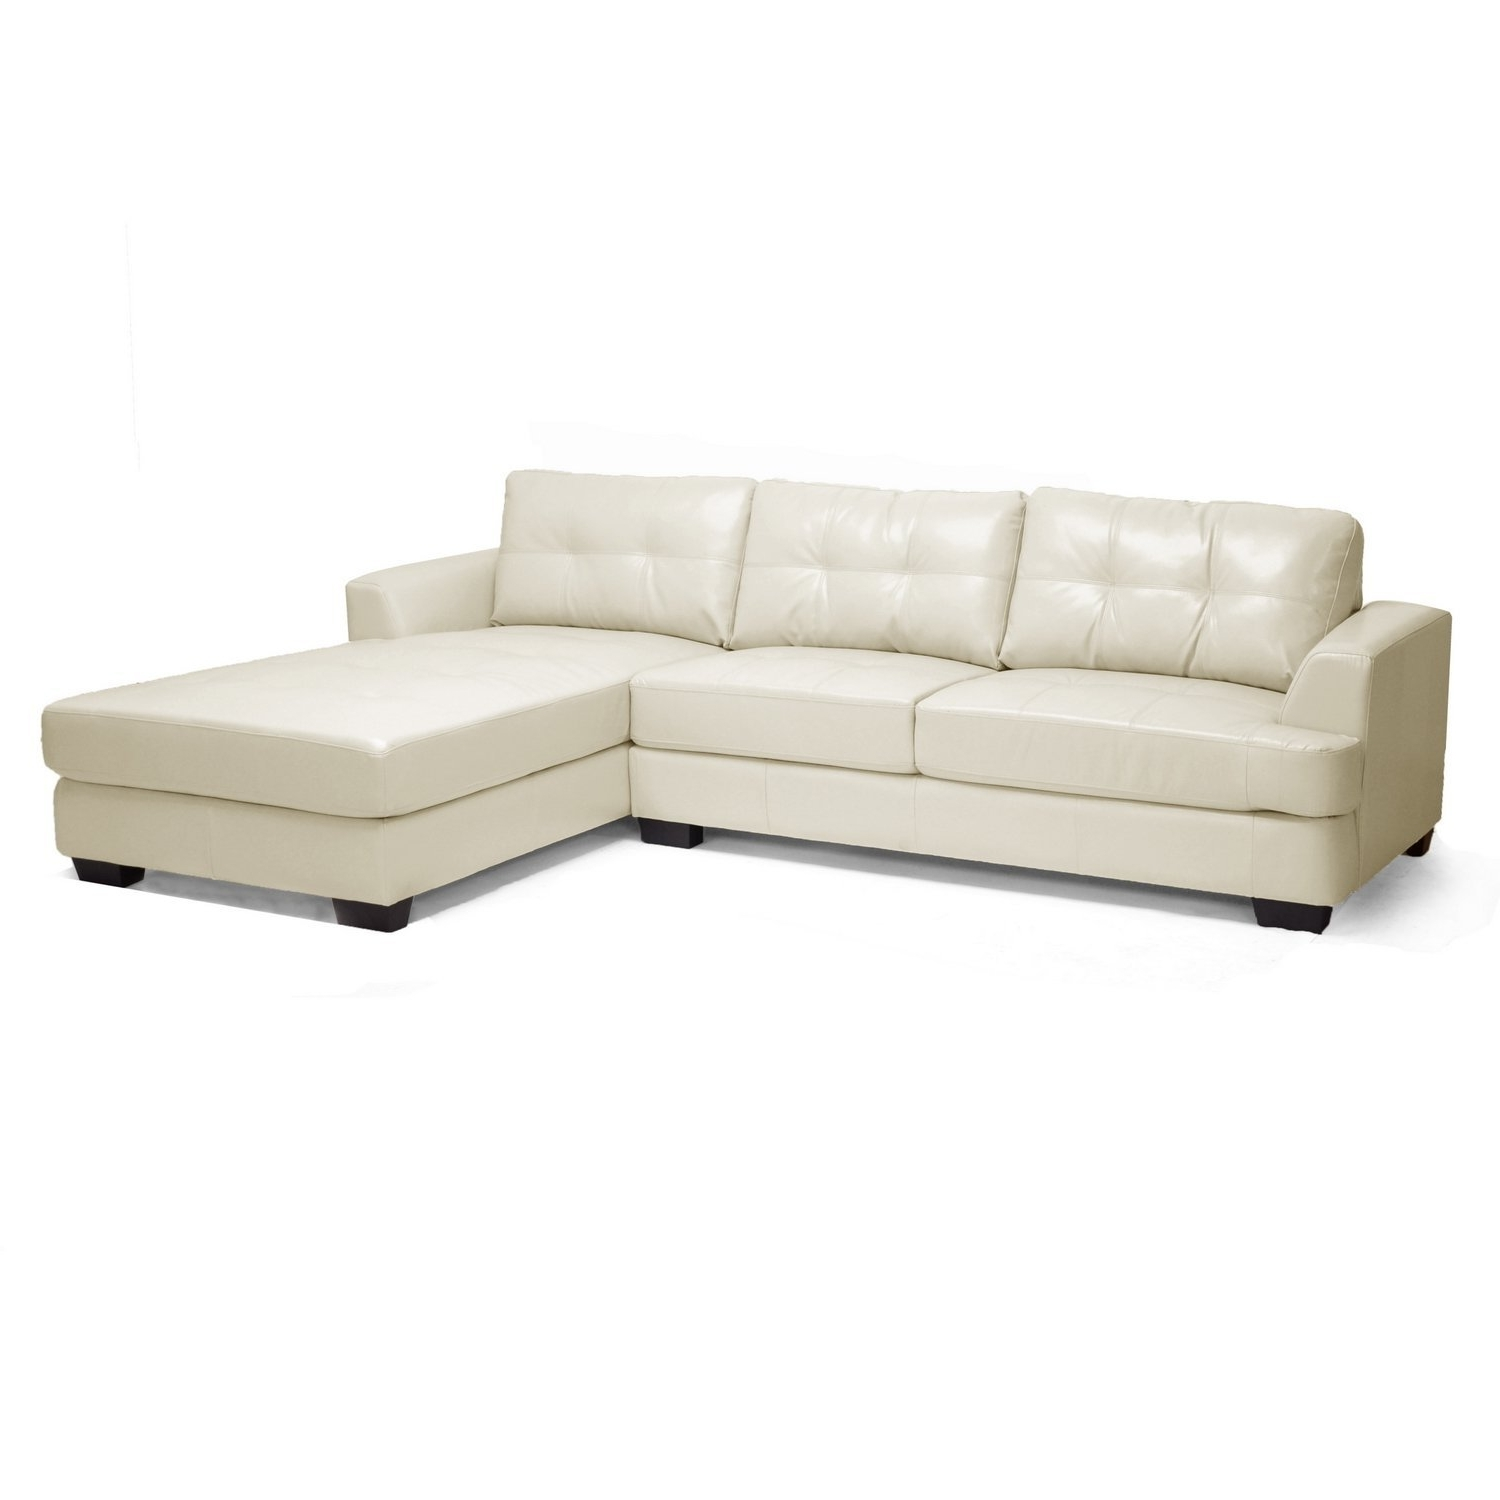 Leather Chaise Sofas Inside Most Current Amazon: Baxton Studio Dobson Leather Modern Sectional Sofa (View 10 of 15)